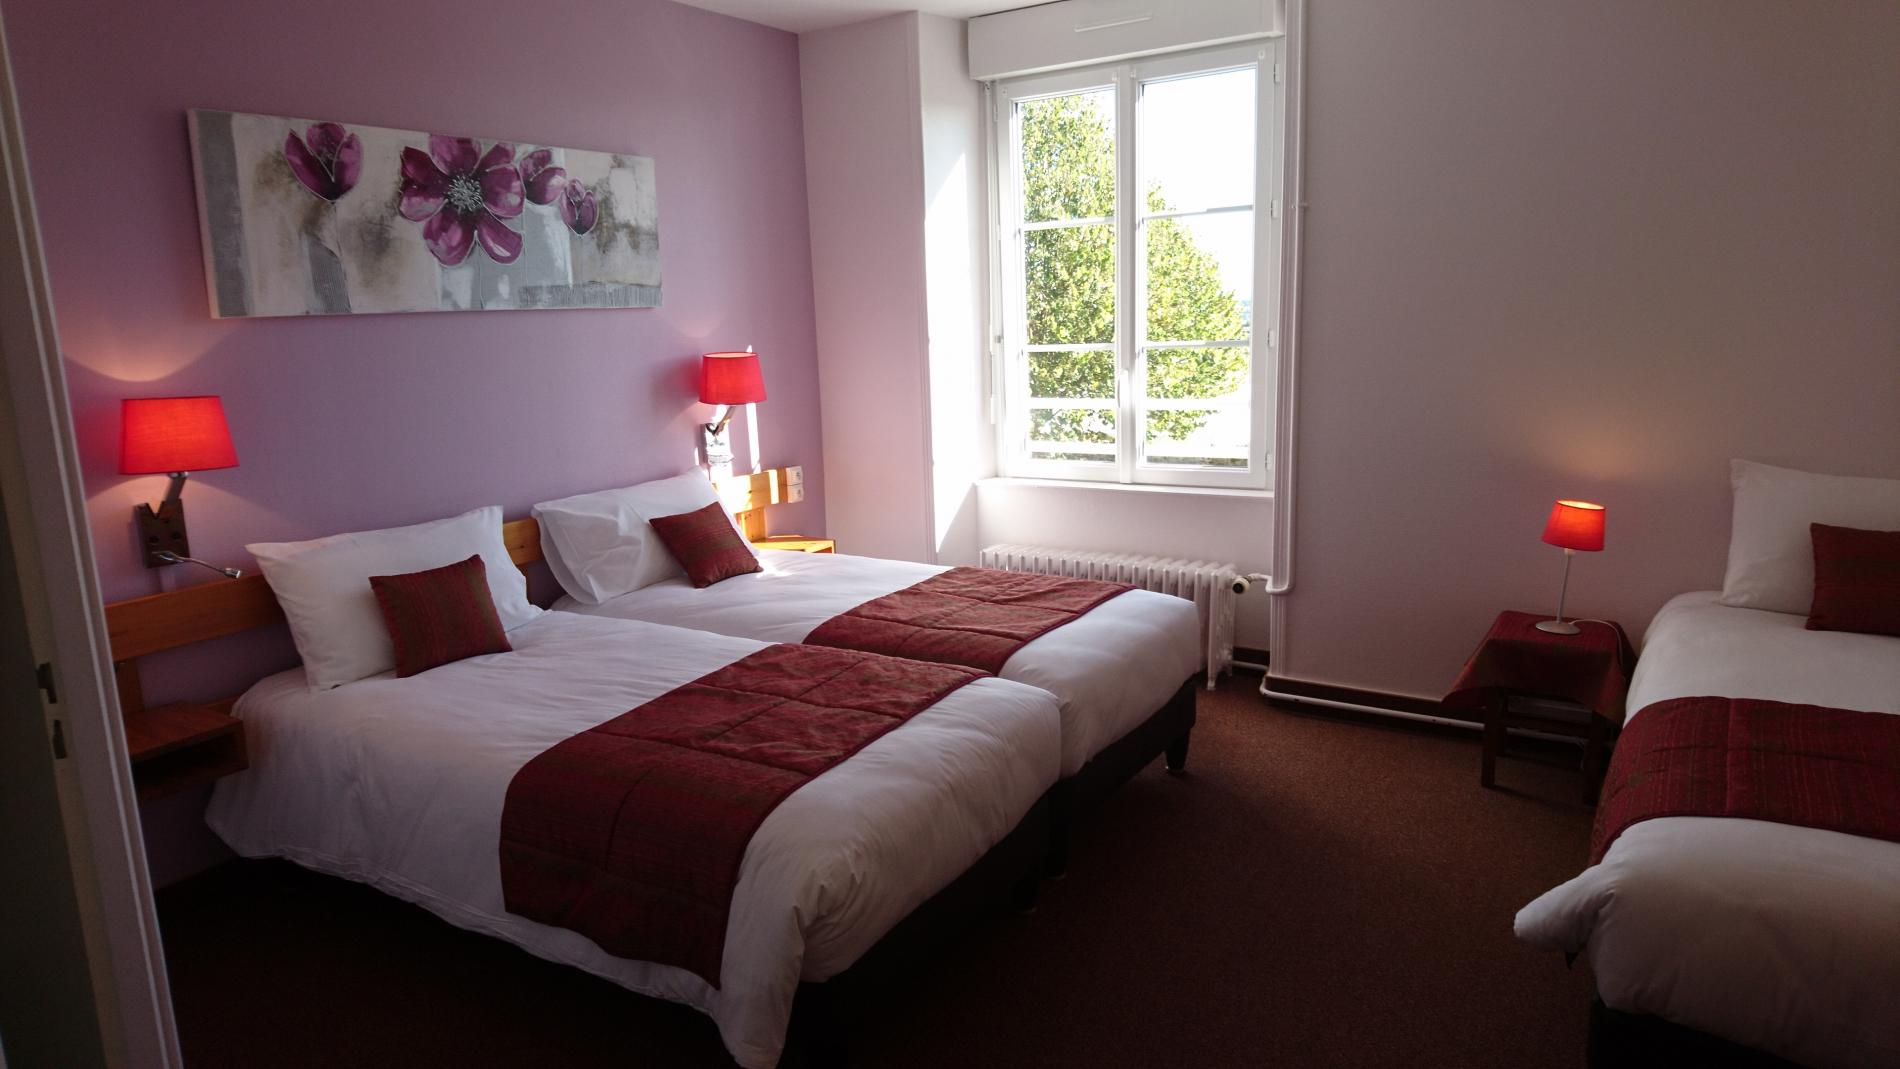 Chambre n°6 3Pers.